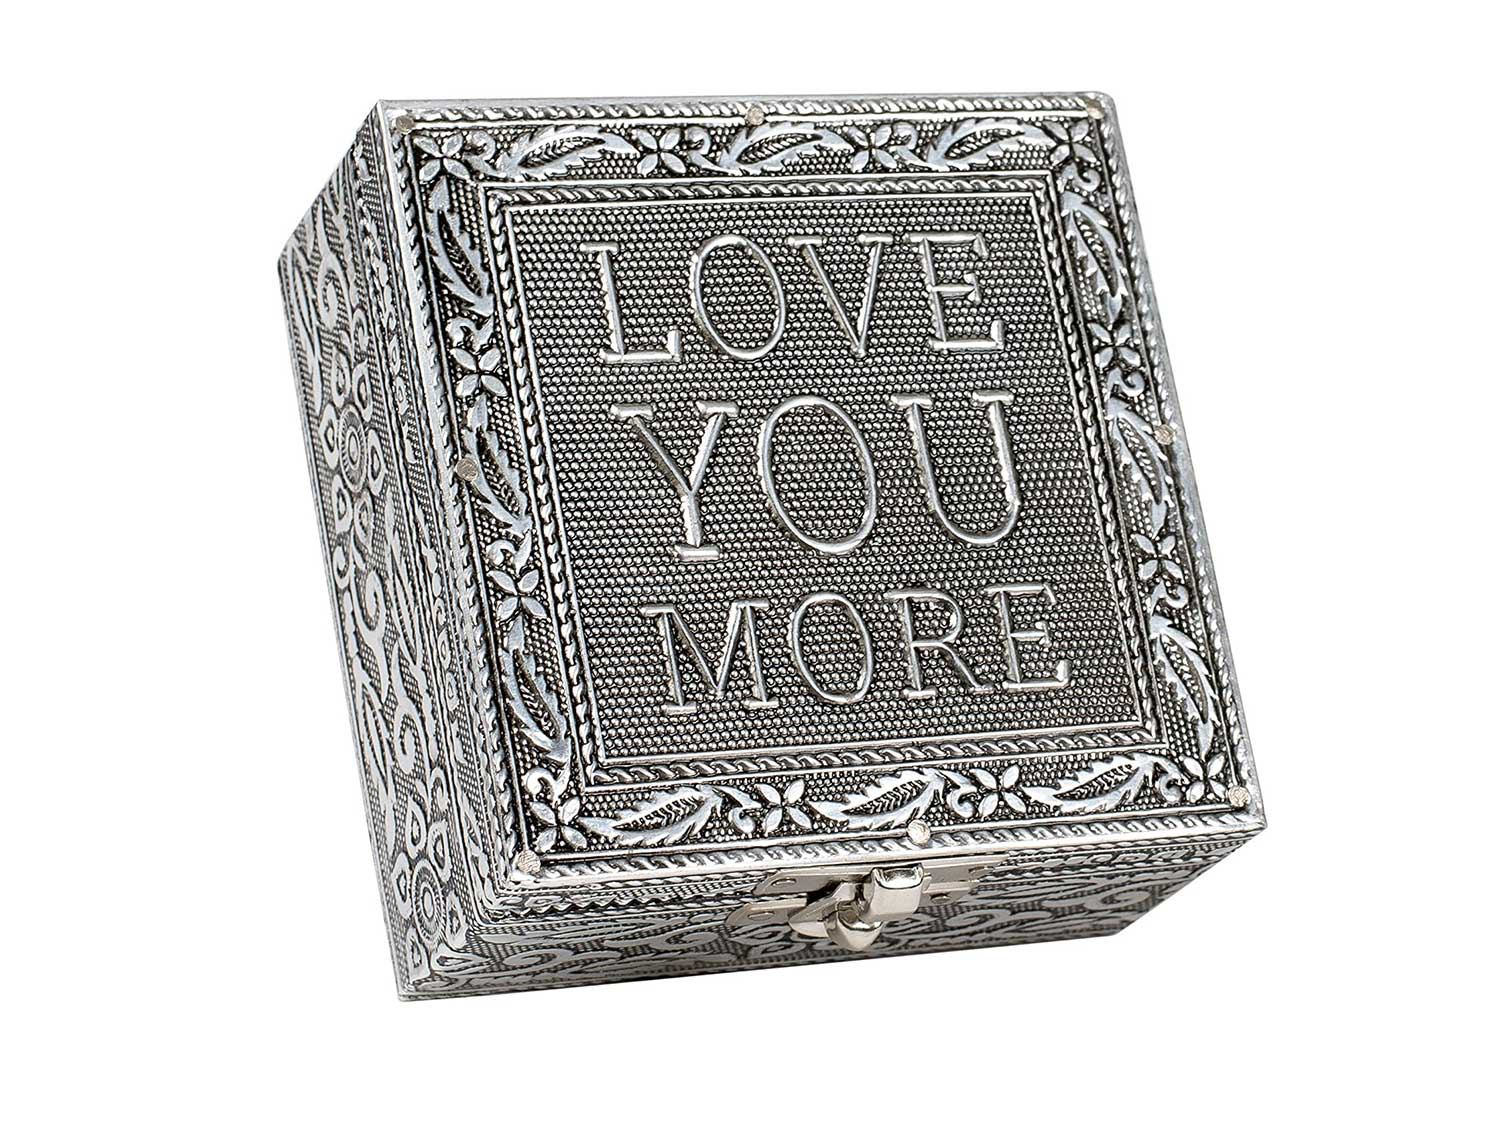 Cottage Garden Love You More Silver Color Metal Jewelry Keepsake Decorative Box